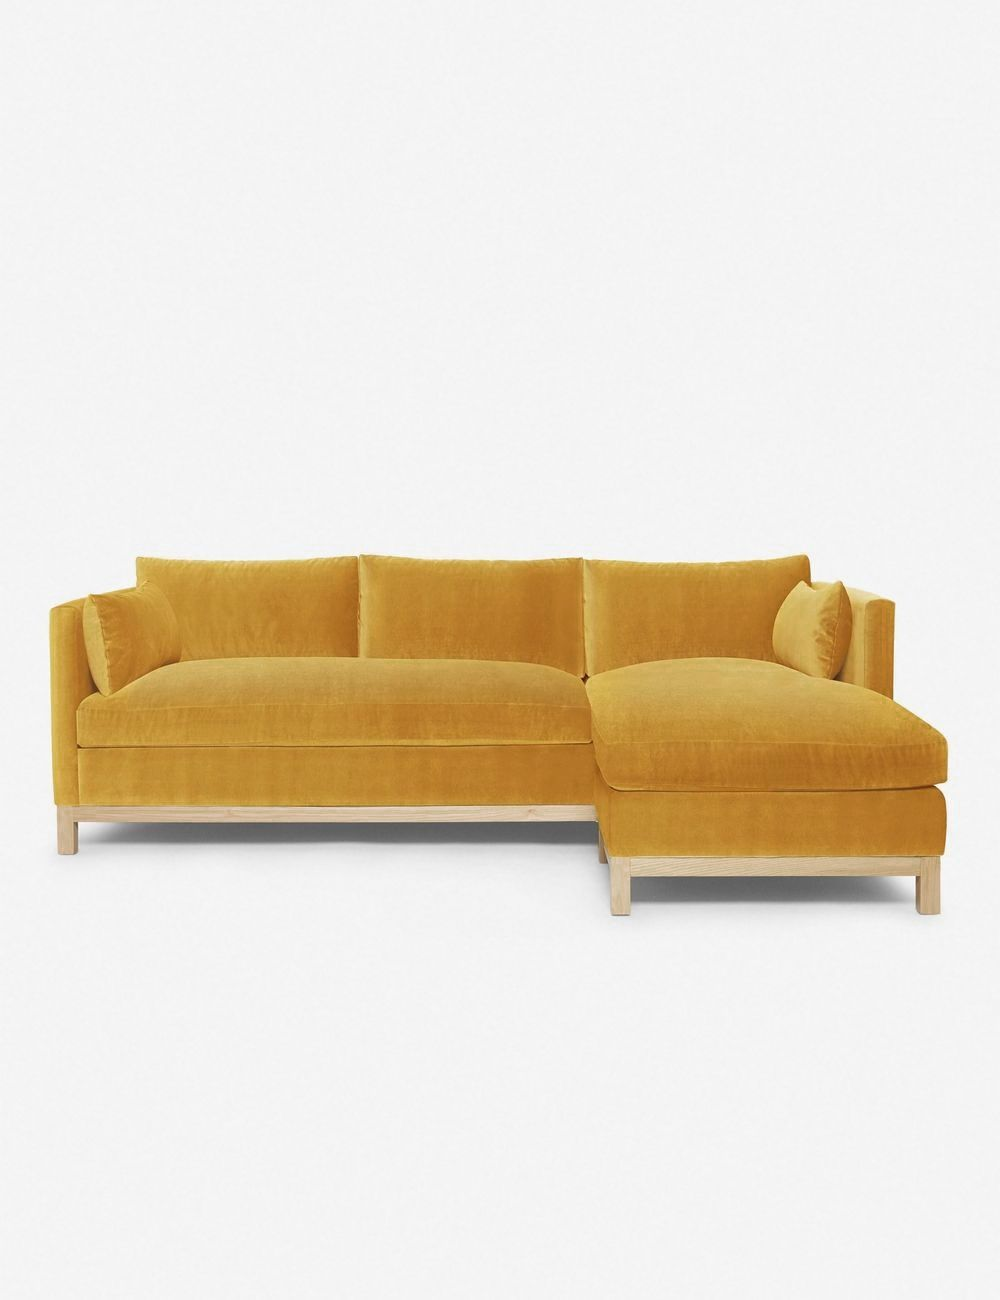 Hollingworth Right Facing Sectional Sofa Goldenrod By Ginny Macdonald